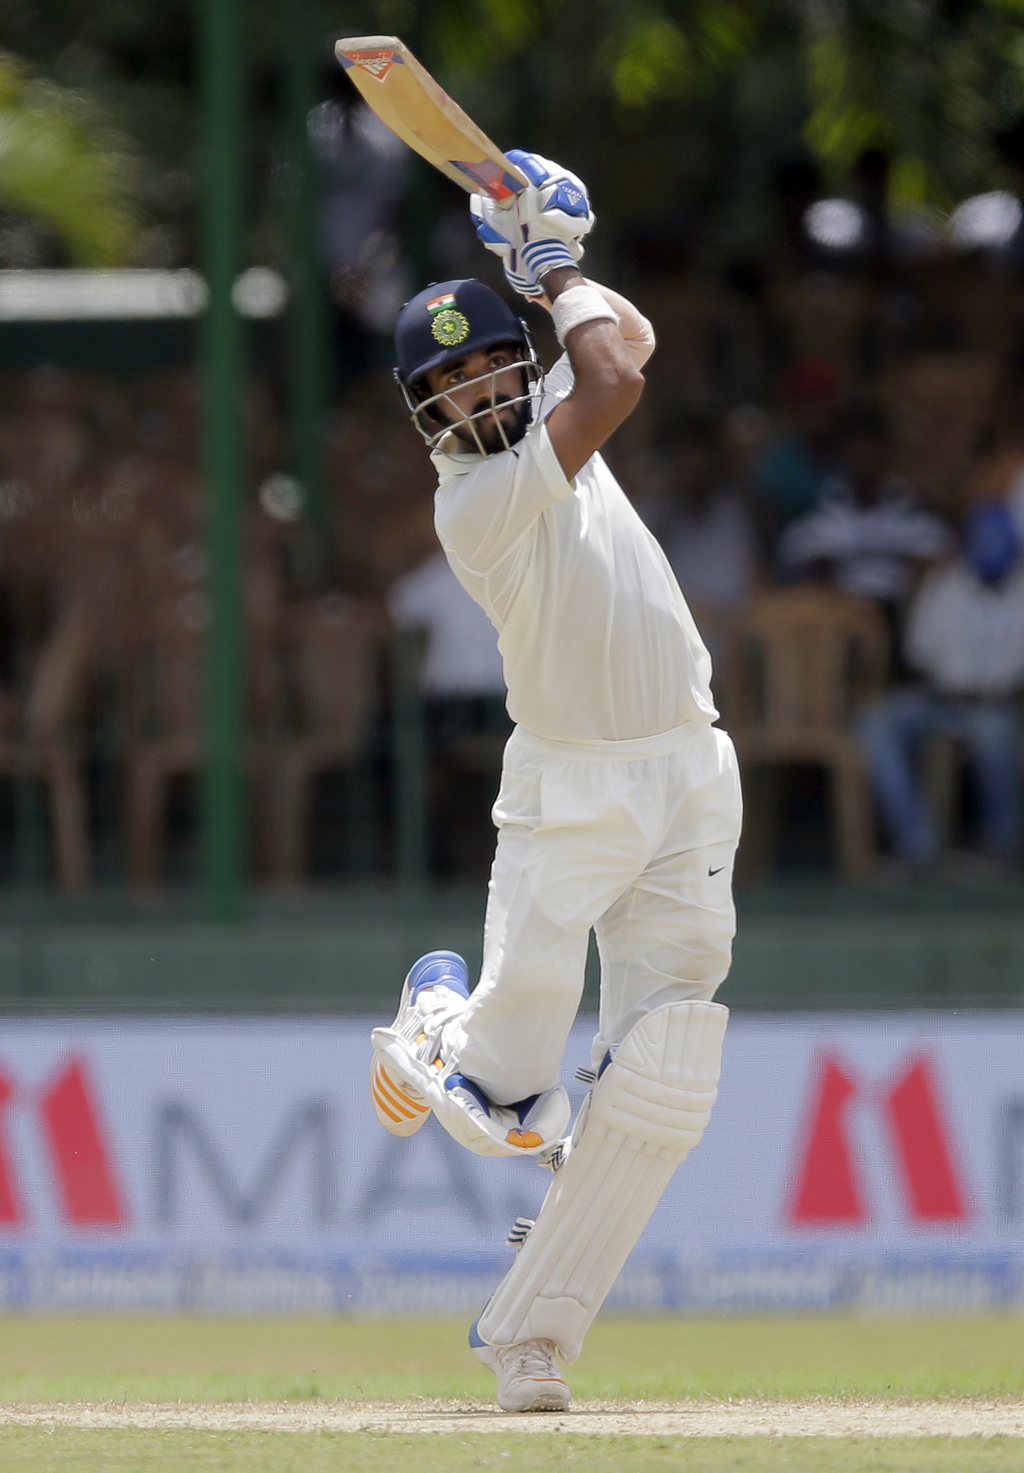 India's Lokesh Rahul watches his shot during their second cricket test match against Sri Lanka in Colombo, Sri Lanka, Thursday, Aug. 3, 2017. (AP Phot...